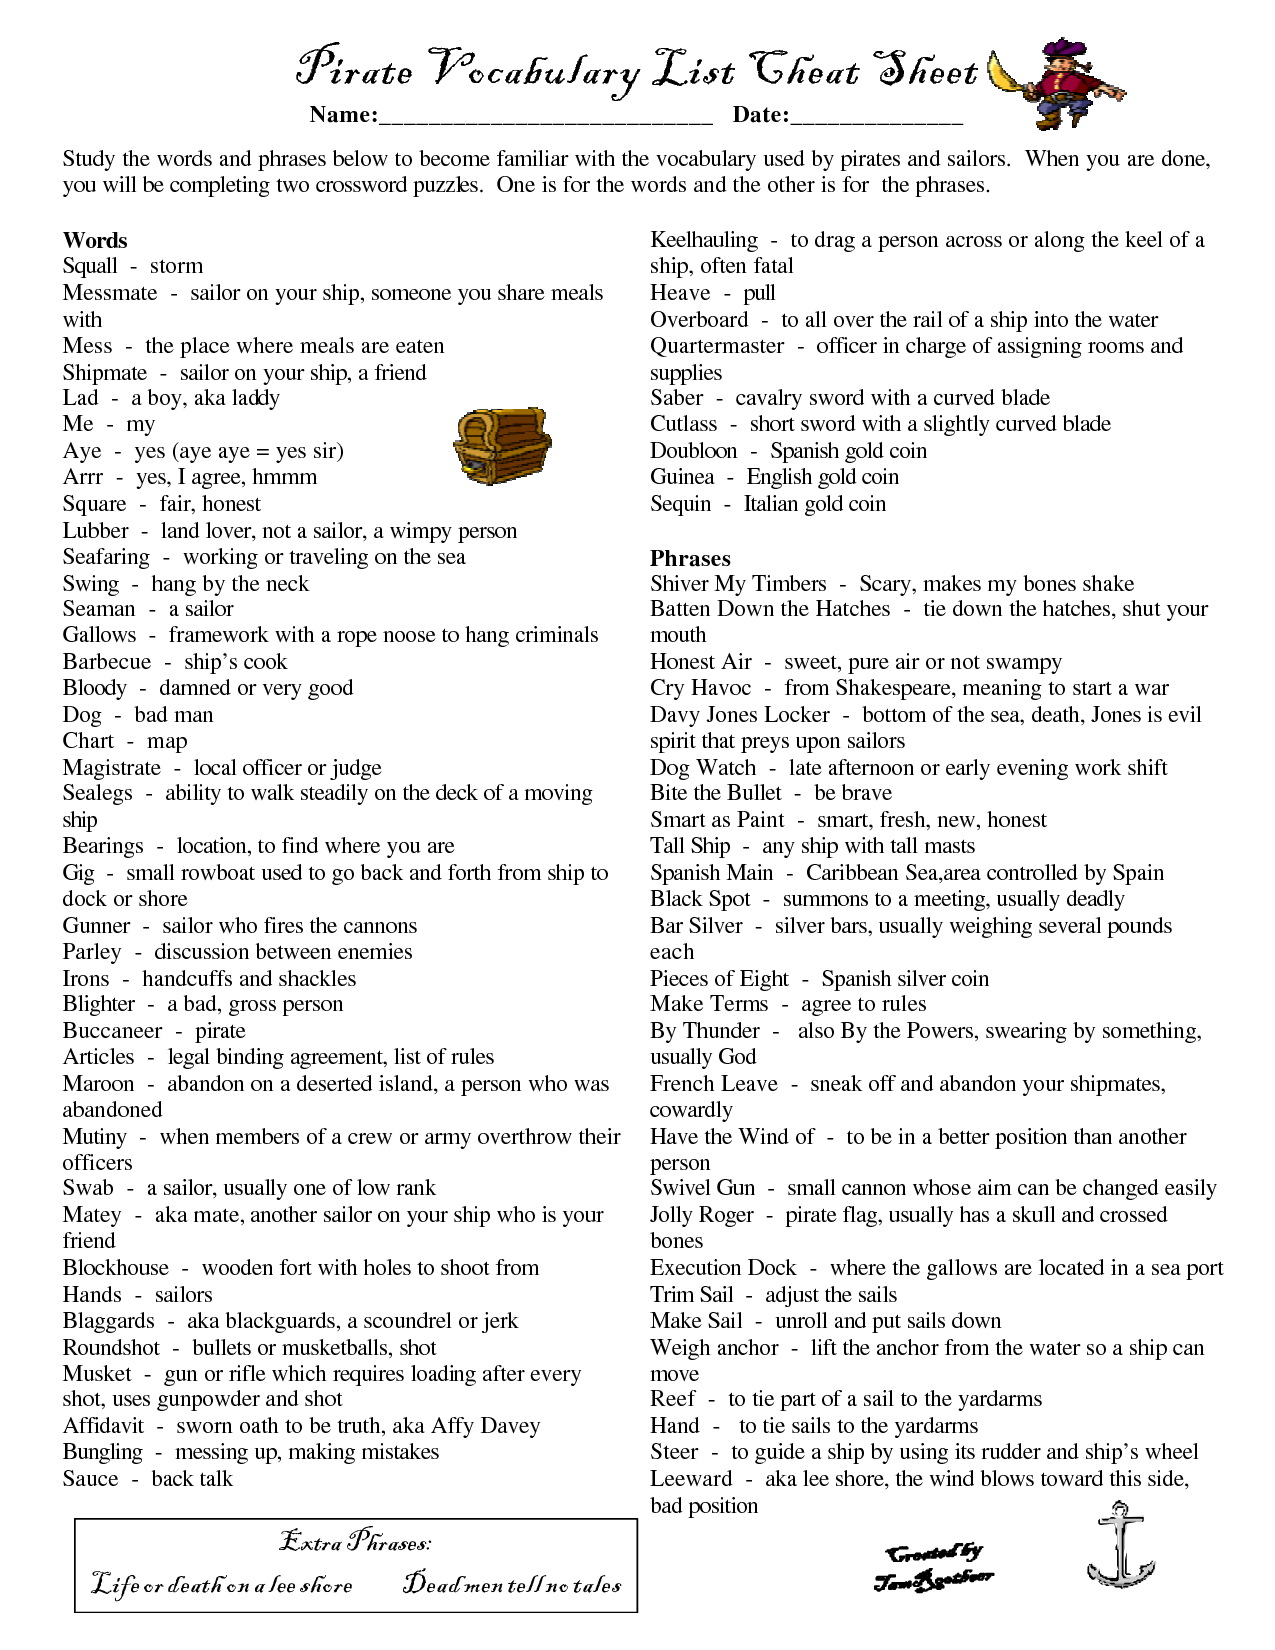 Pirate Sayings And Phrases